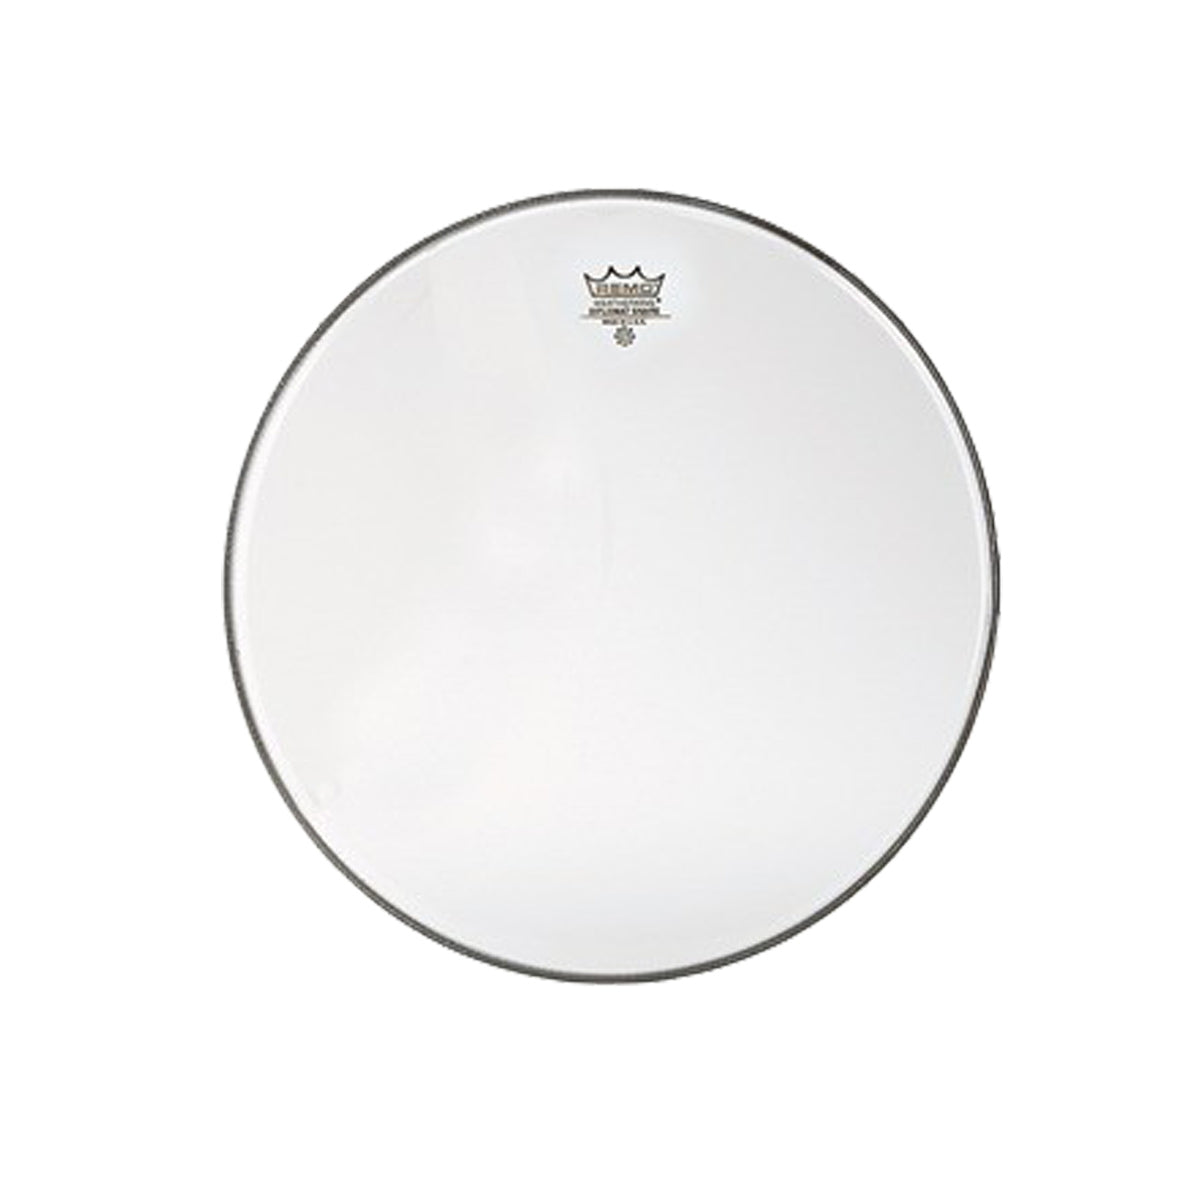 Remo SD-0114-00 14inch Diplomat Hazy Snare Drum Head Skin